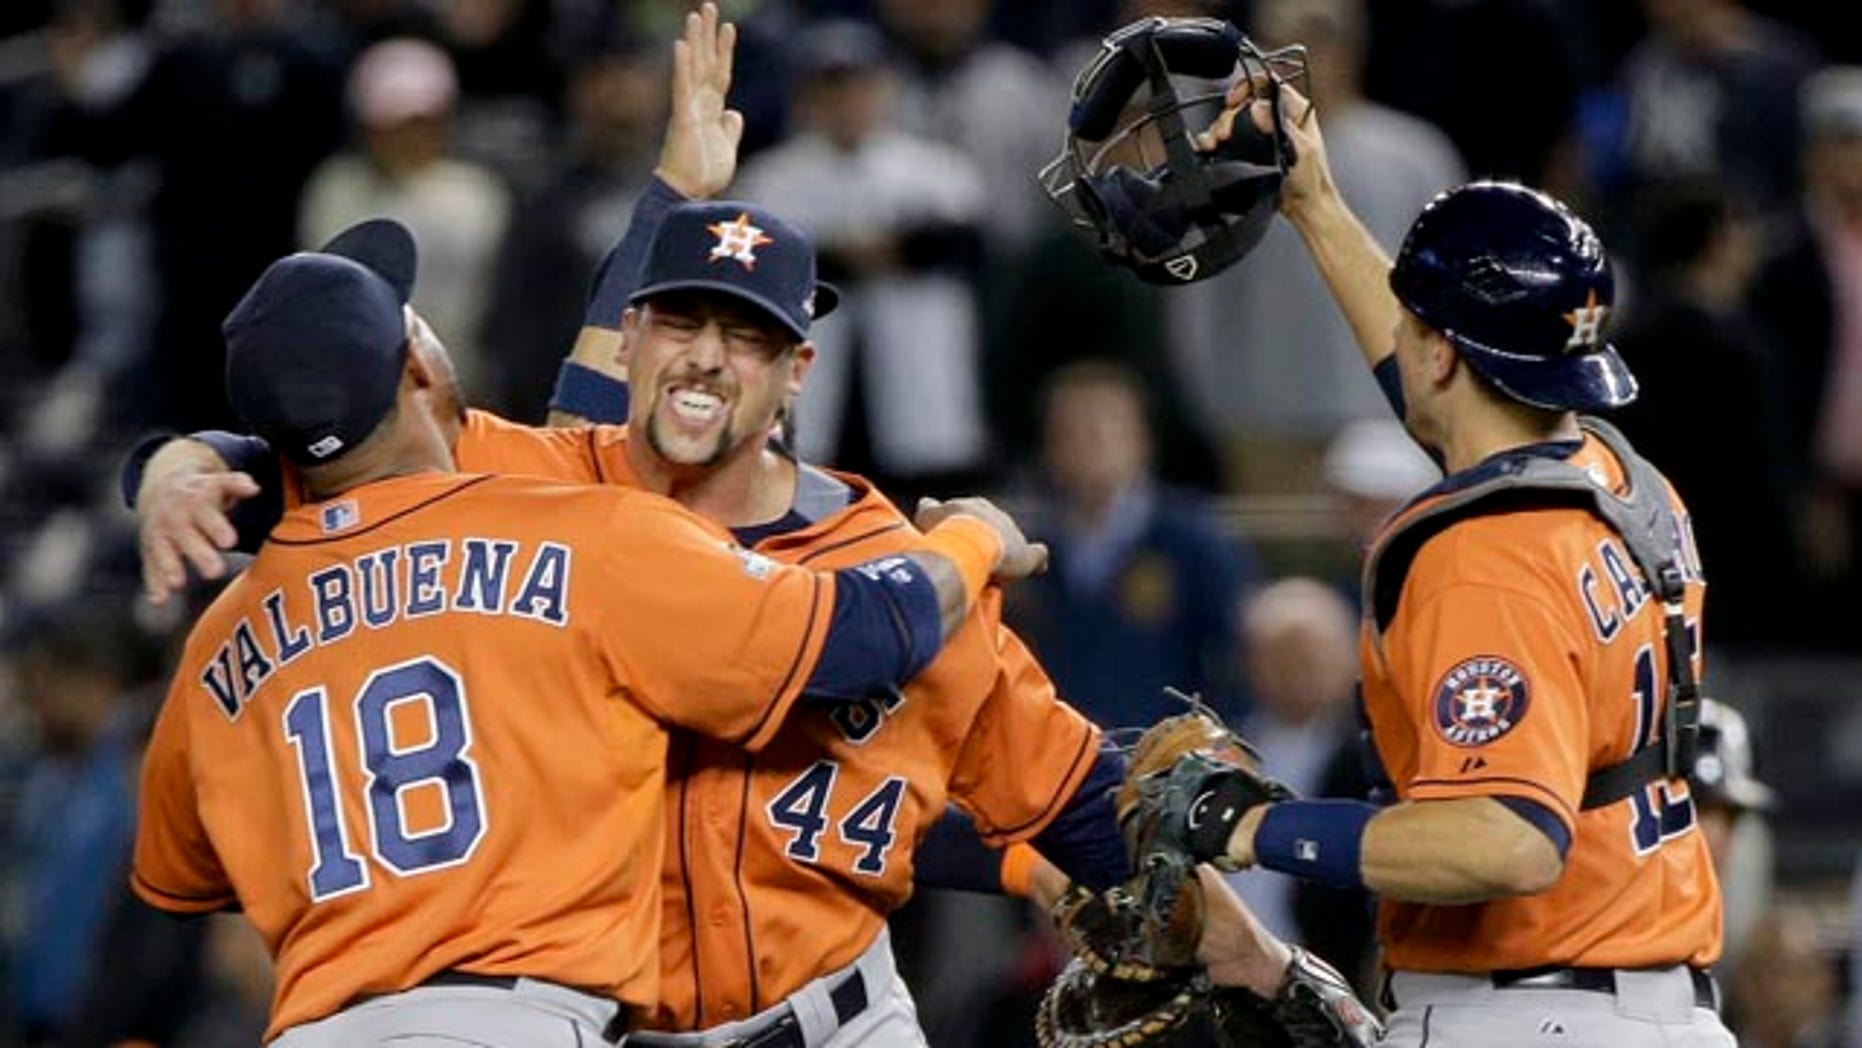 Oct. 6, 2015: Houston Astros' Luis Valbuena (18), Luke Gregerson (44) and Jason Castro, right, celebrate after the Astros defeated the New York Yankees 3-0 in the American League wild card baseball game in New York. (AP Photo/Julie Jacobson)